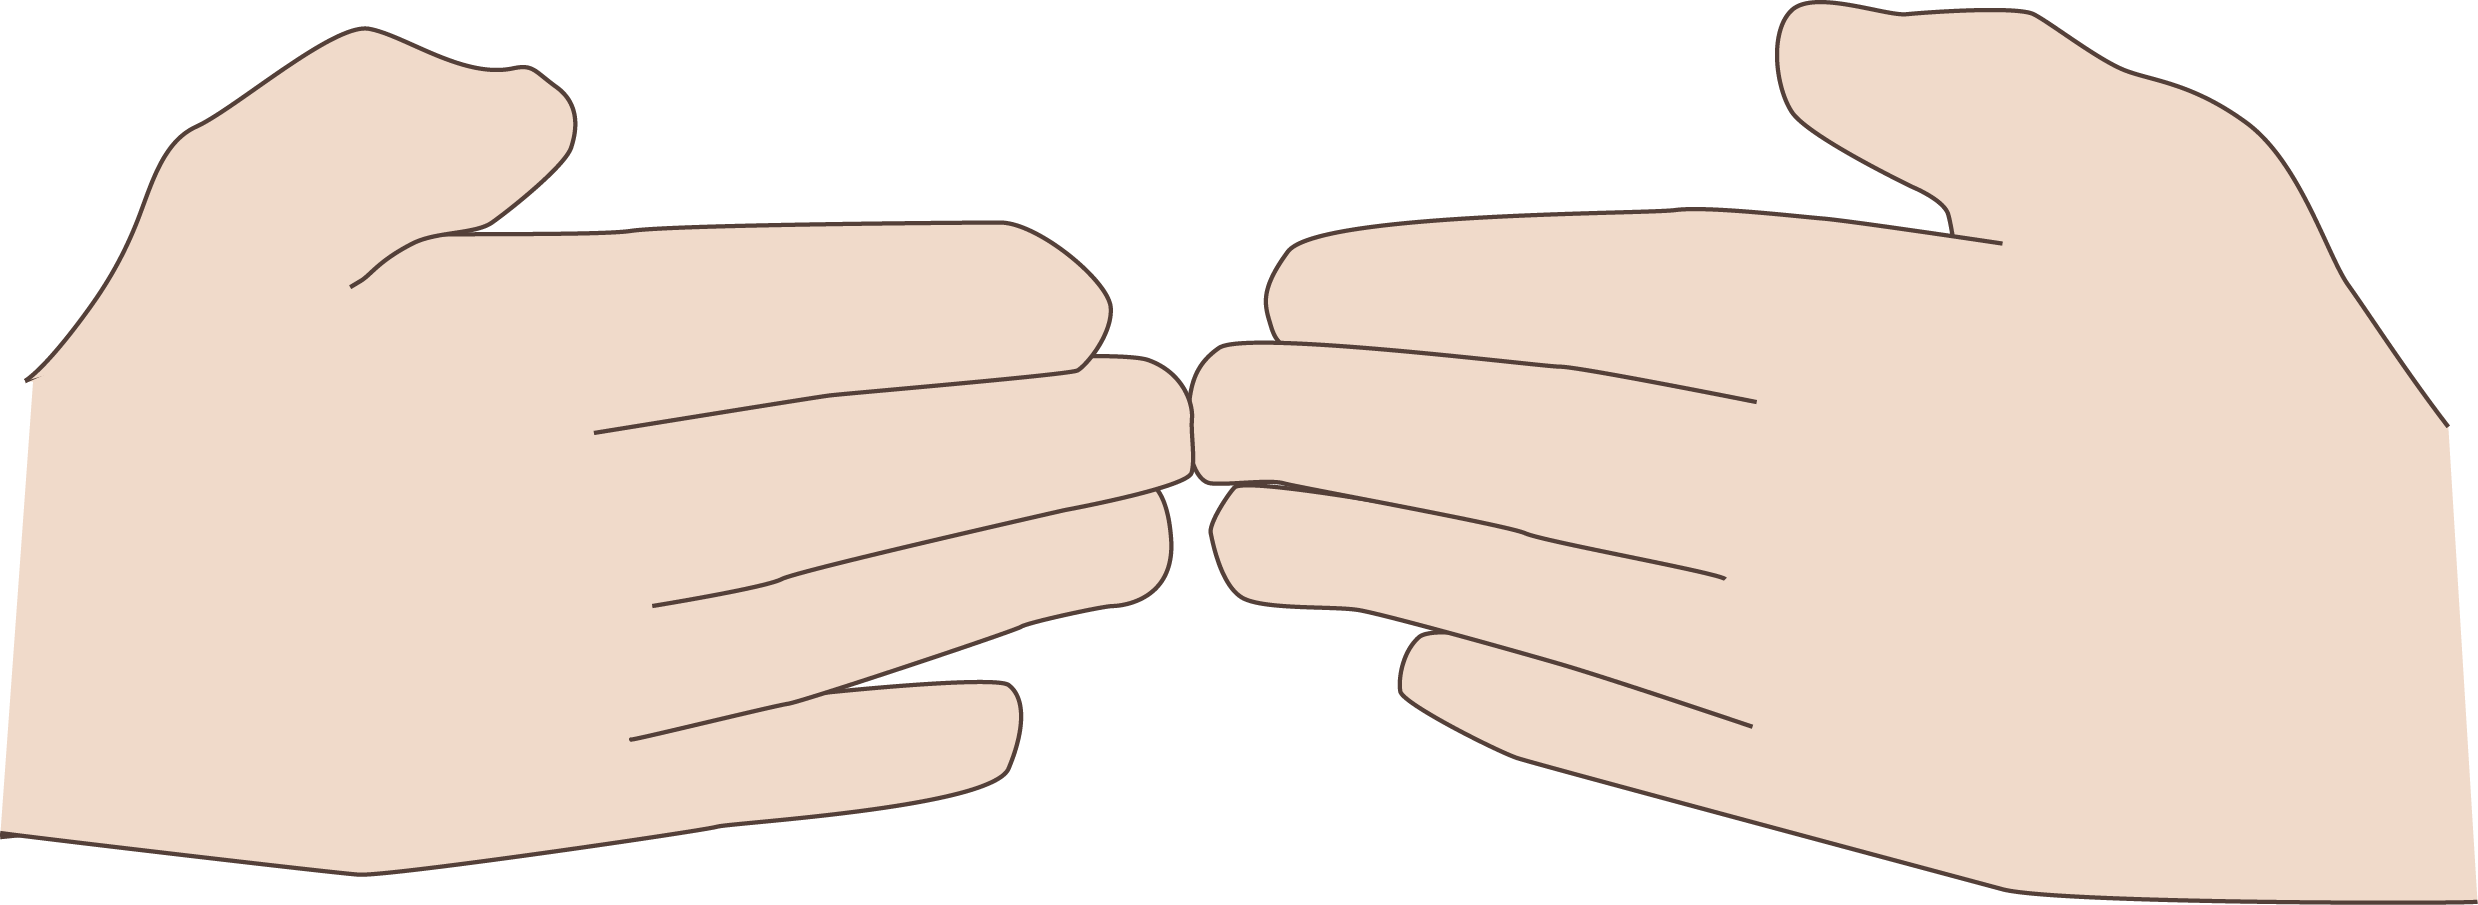 Coding manual two open. Finger clipart hand span